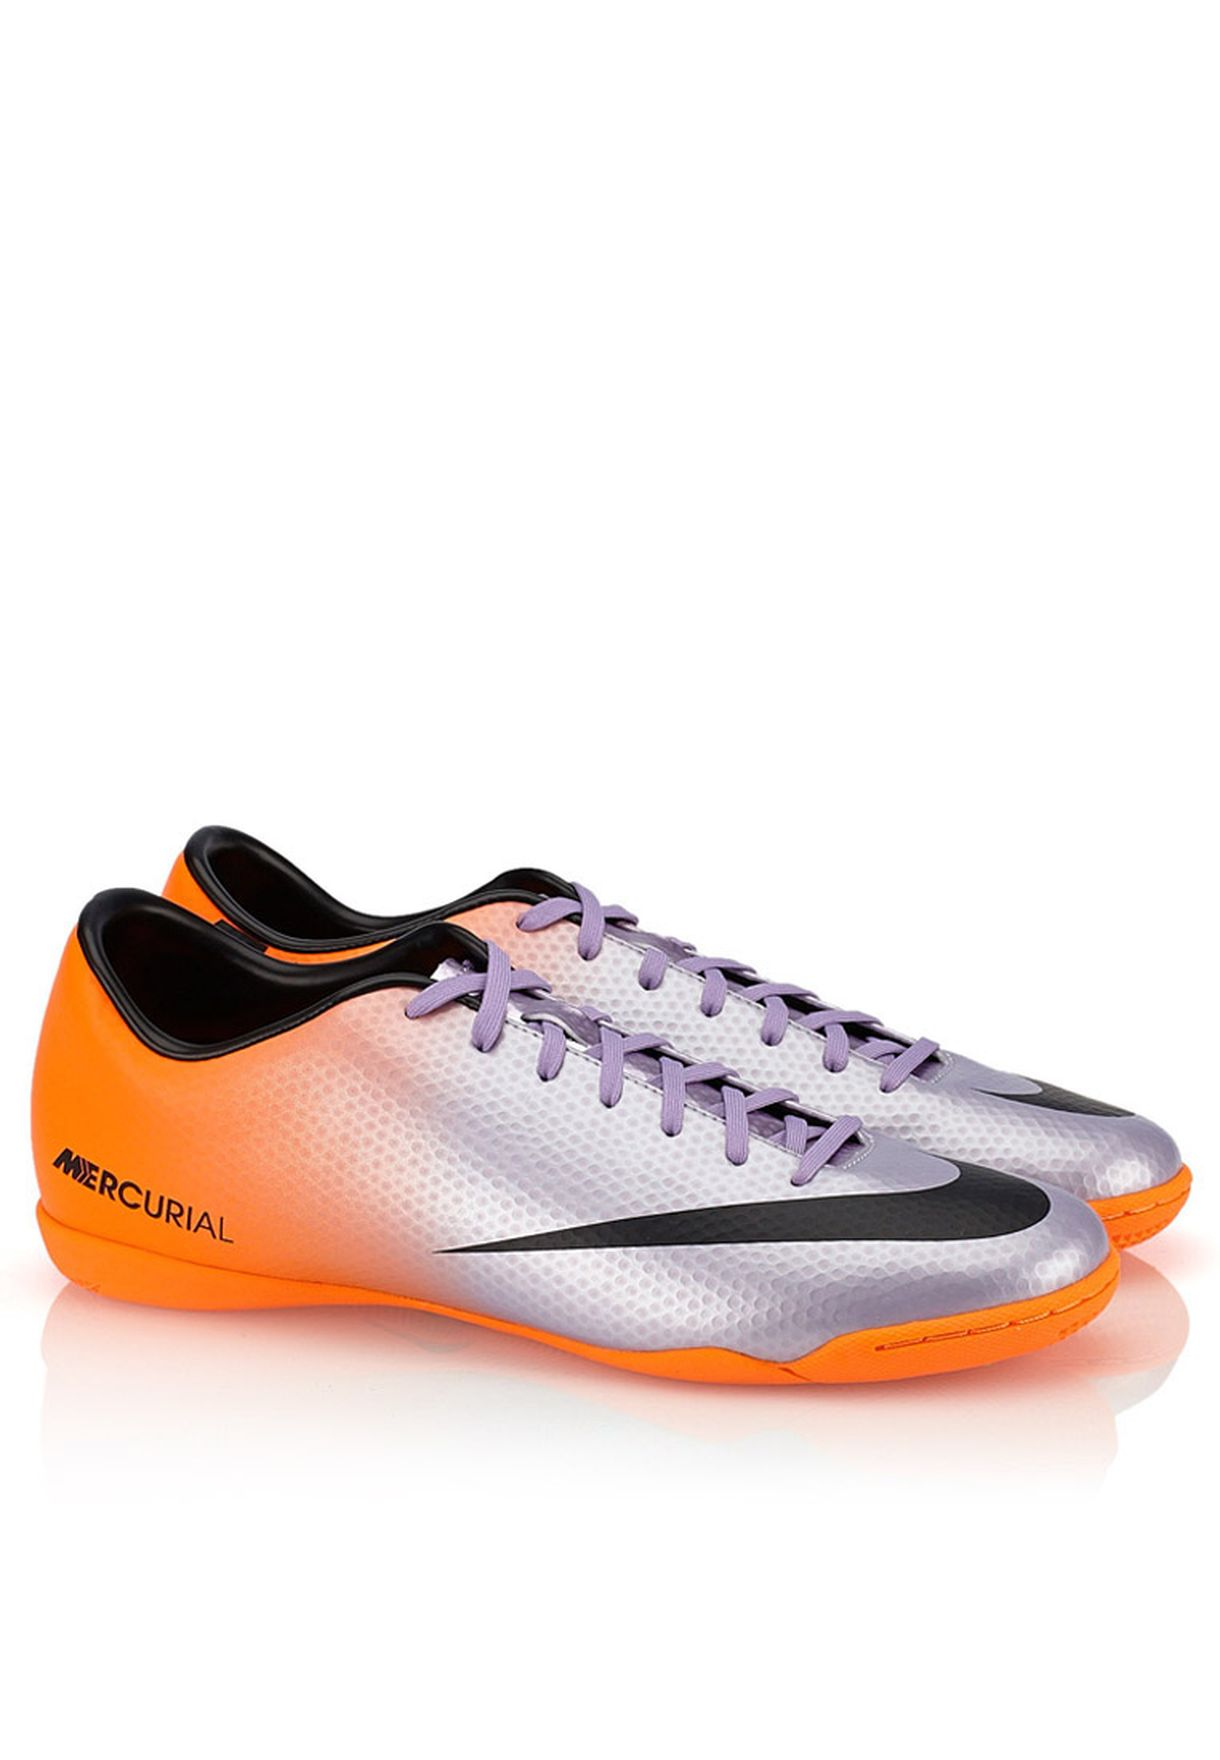 3e1c52a89fe1 Shop Nike silver Mercurial Victory IV IC 555614-508 for Men in Qatar ...